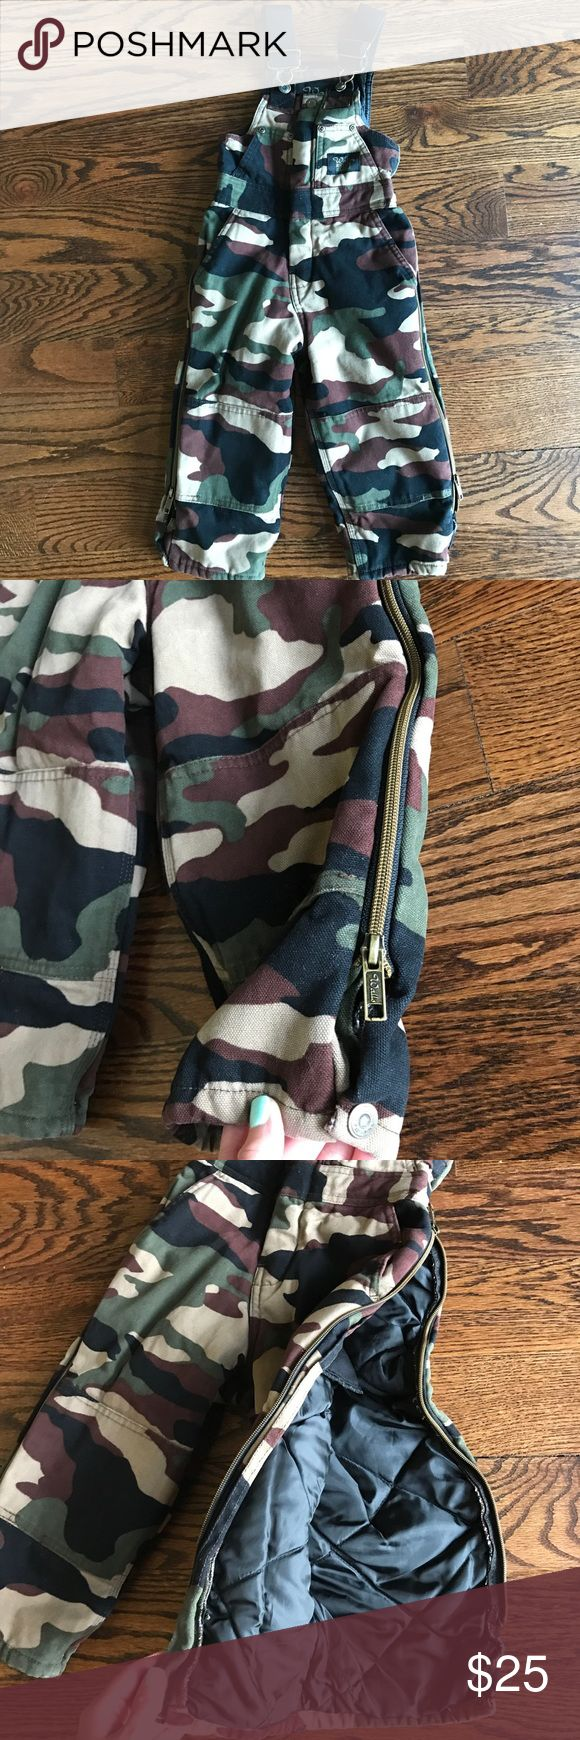 Boys camo Walls blizzard insulated coveralls Great condition! Super thick and insulated! Great for ice fishing, hunting, snow, 4-wheeling, etc Other